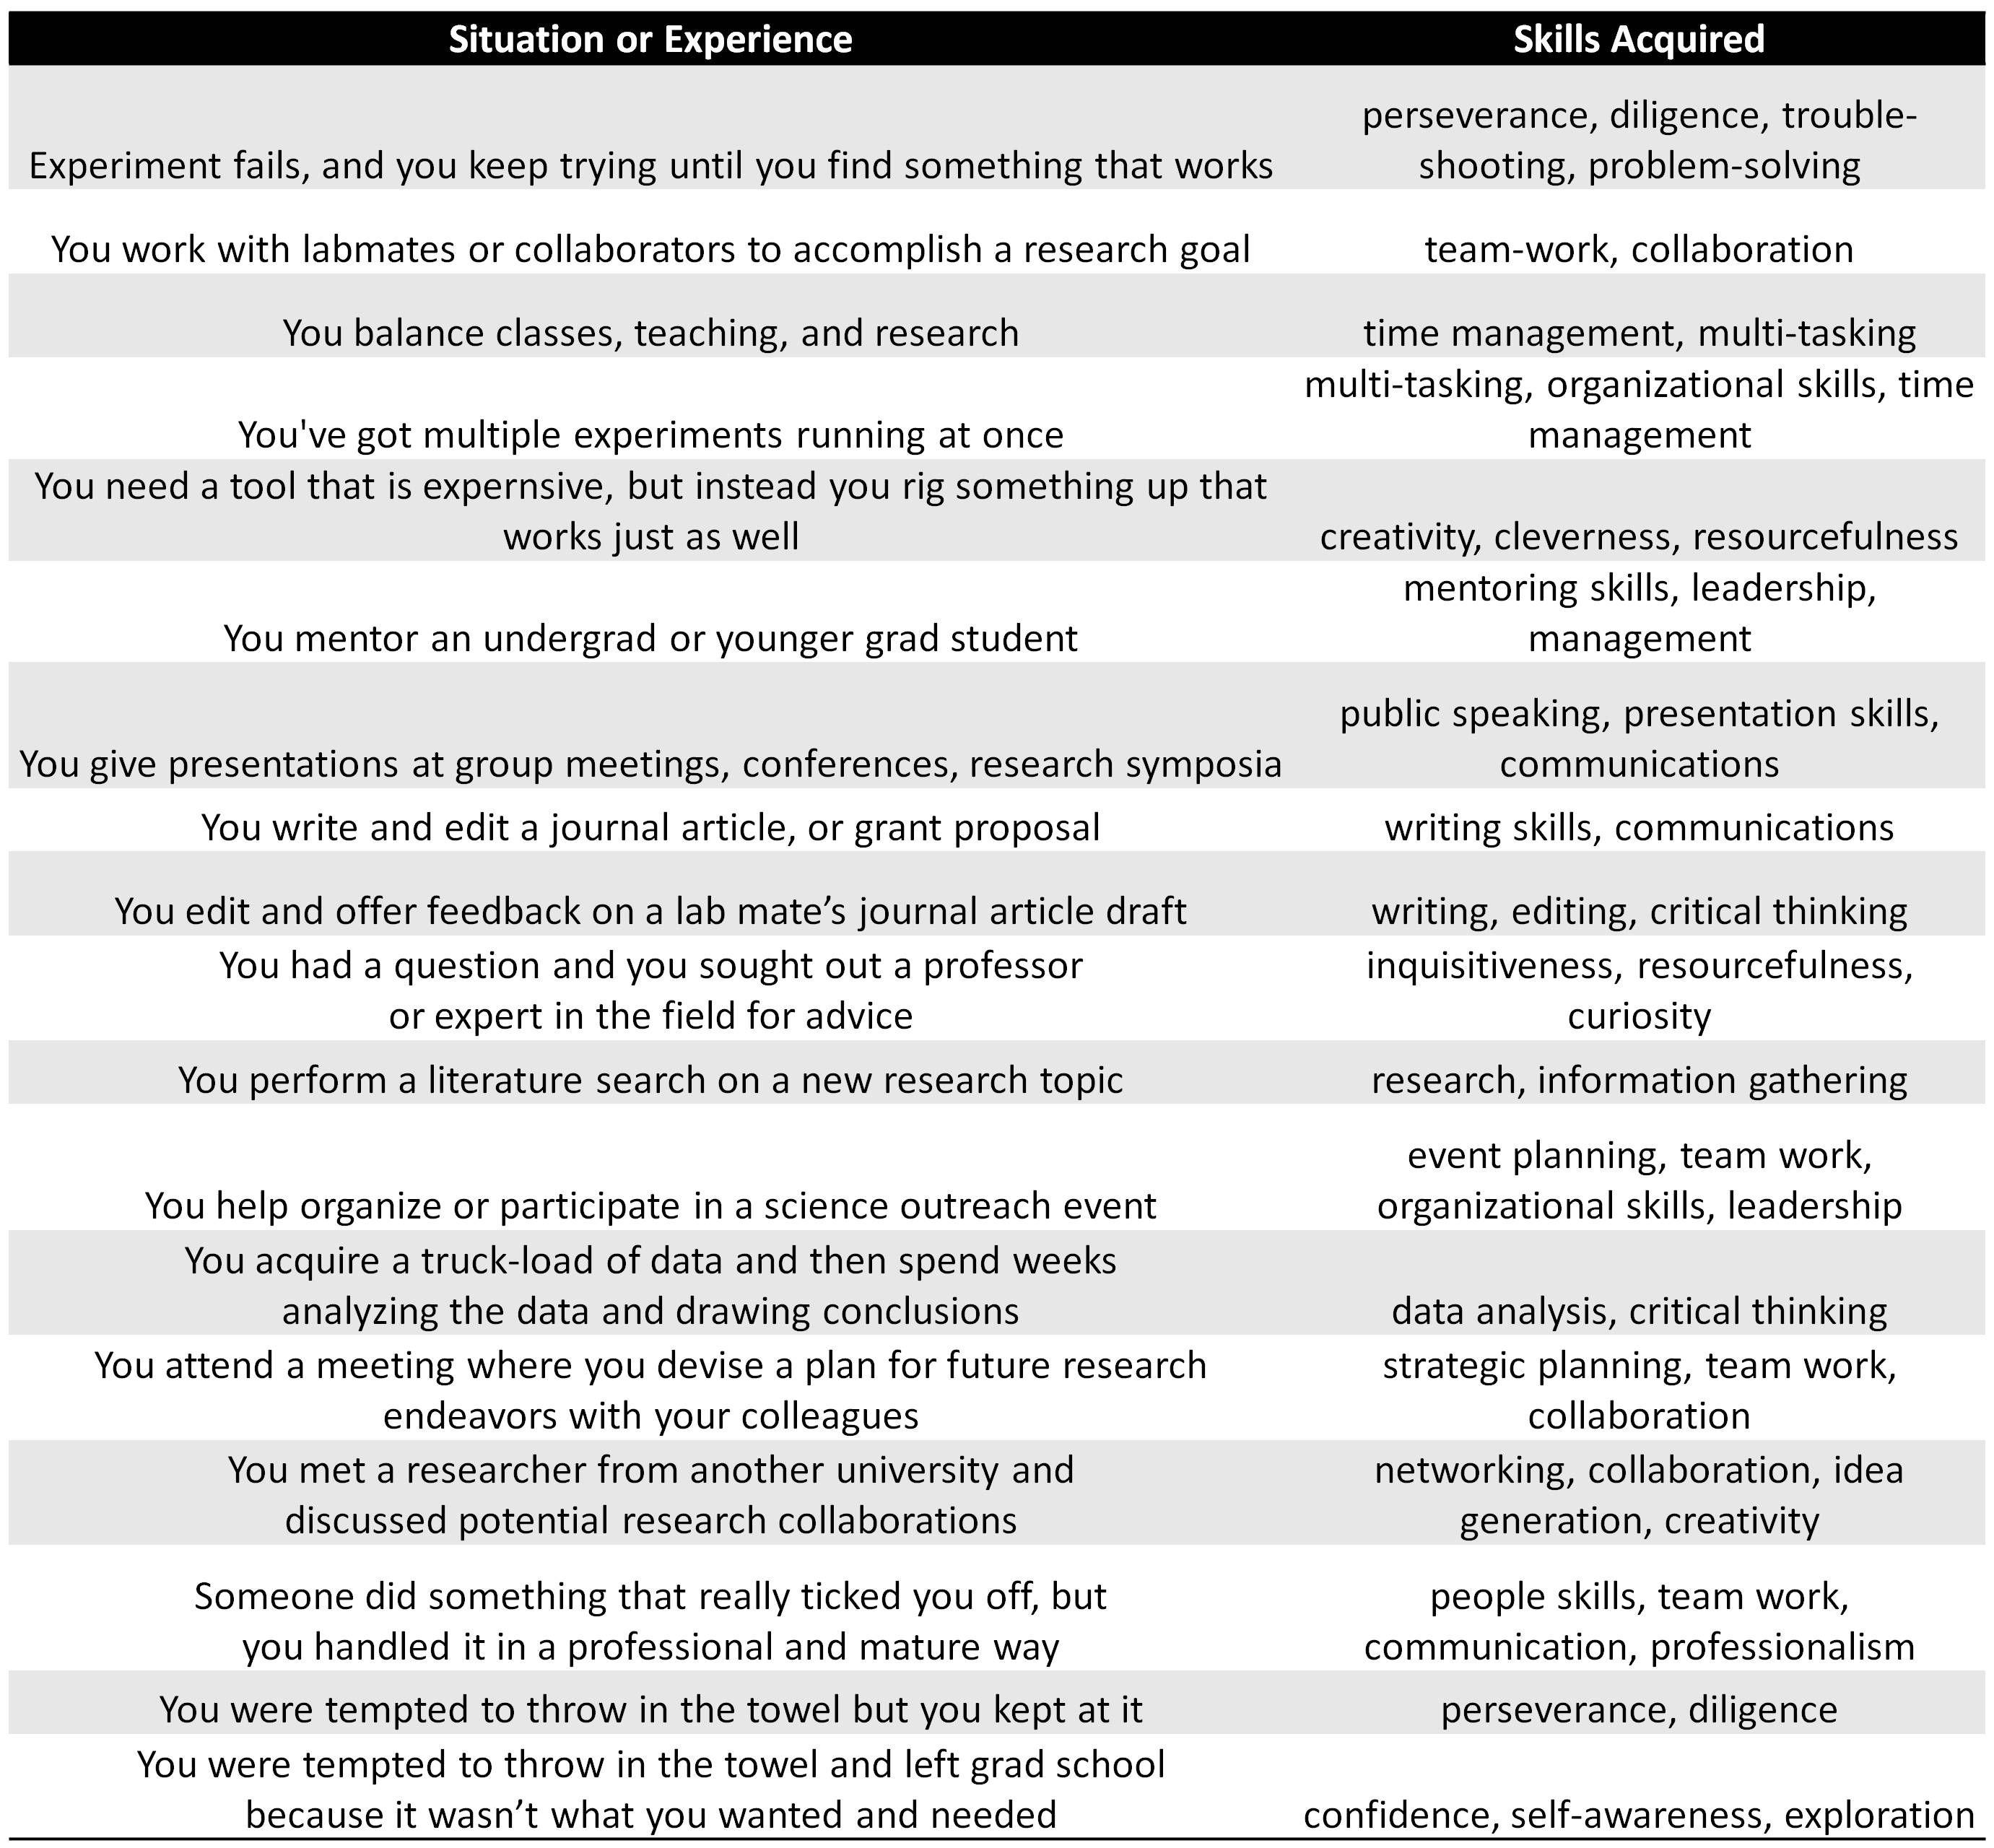 worksheet transferable skills worksheet joindesignseattle worksheet transferable skills worksheet 5c23555e68fd3bc81539d4703ef96d7a jpg 1000 images about transferable skills career images